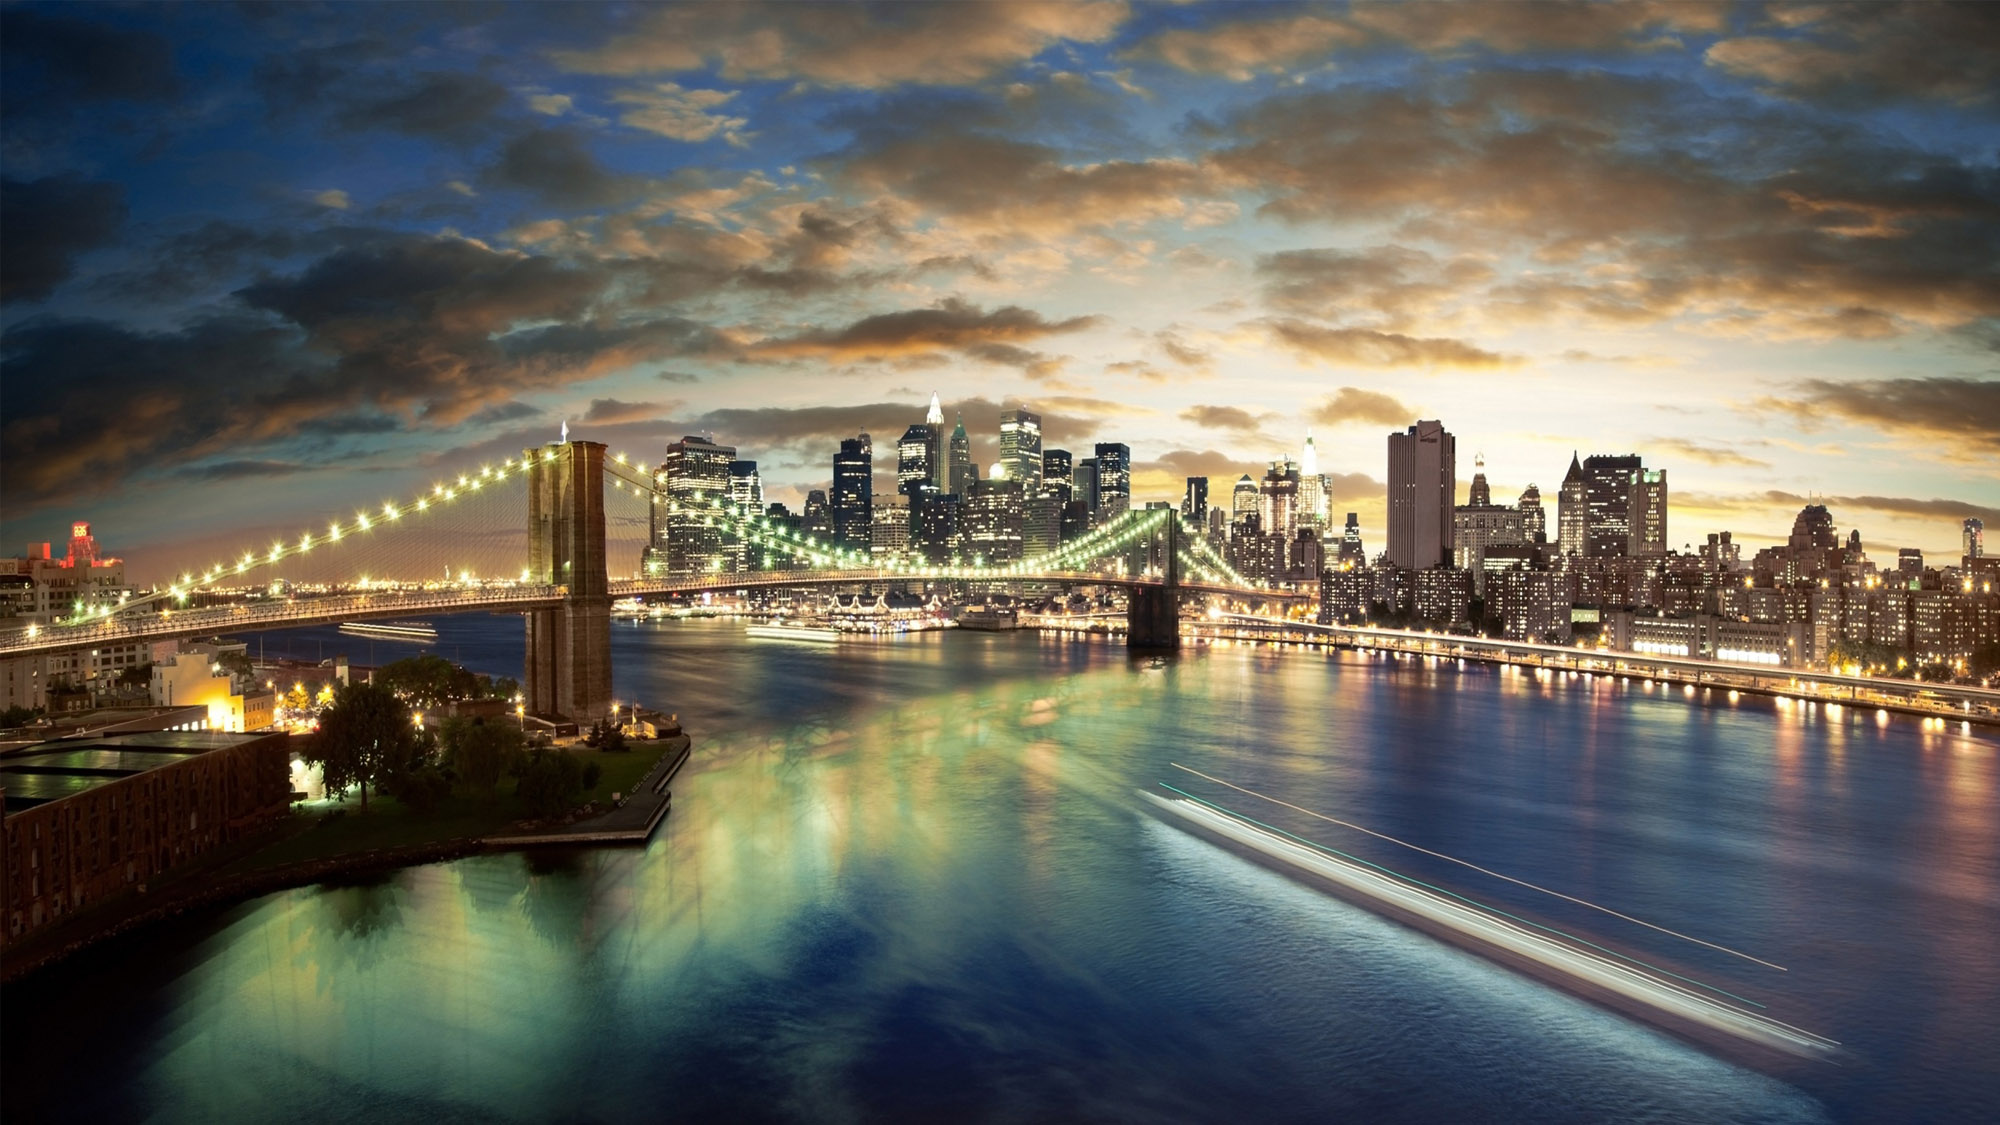 new york full hd wallpaper city brooklyn bridge | Ace Wallpaper